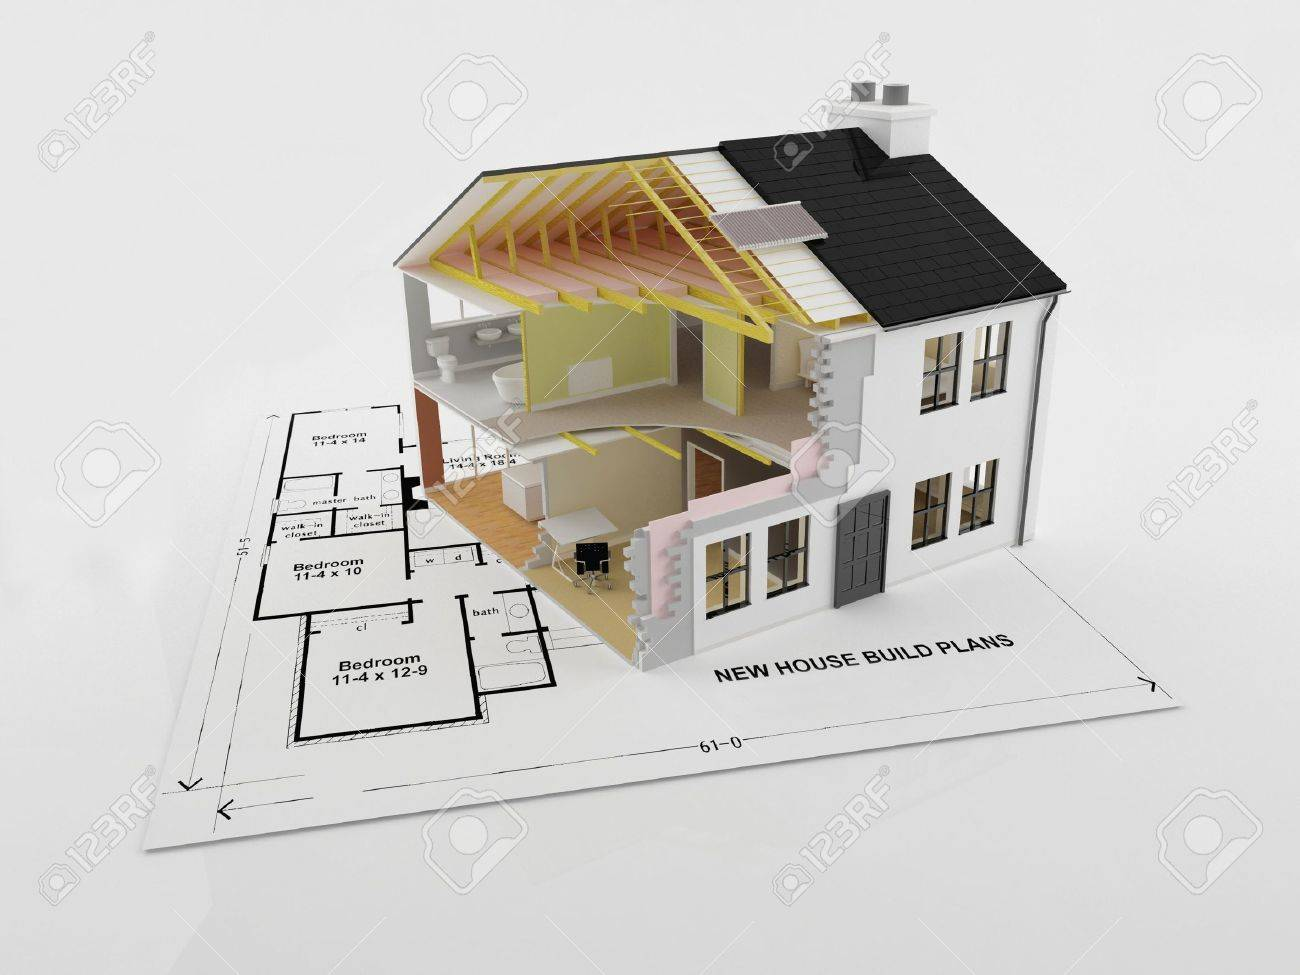 Pleasing Abstract Cross Section Image Of A New Energy Efficient New Home Download Free Architecture Designs Embacsunscenecom